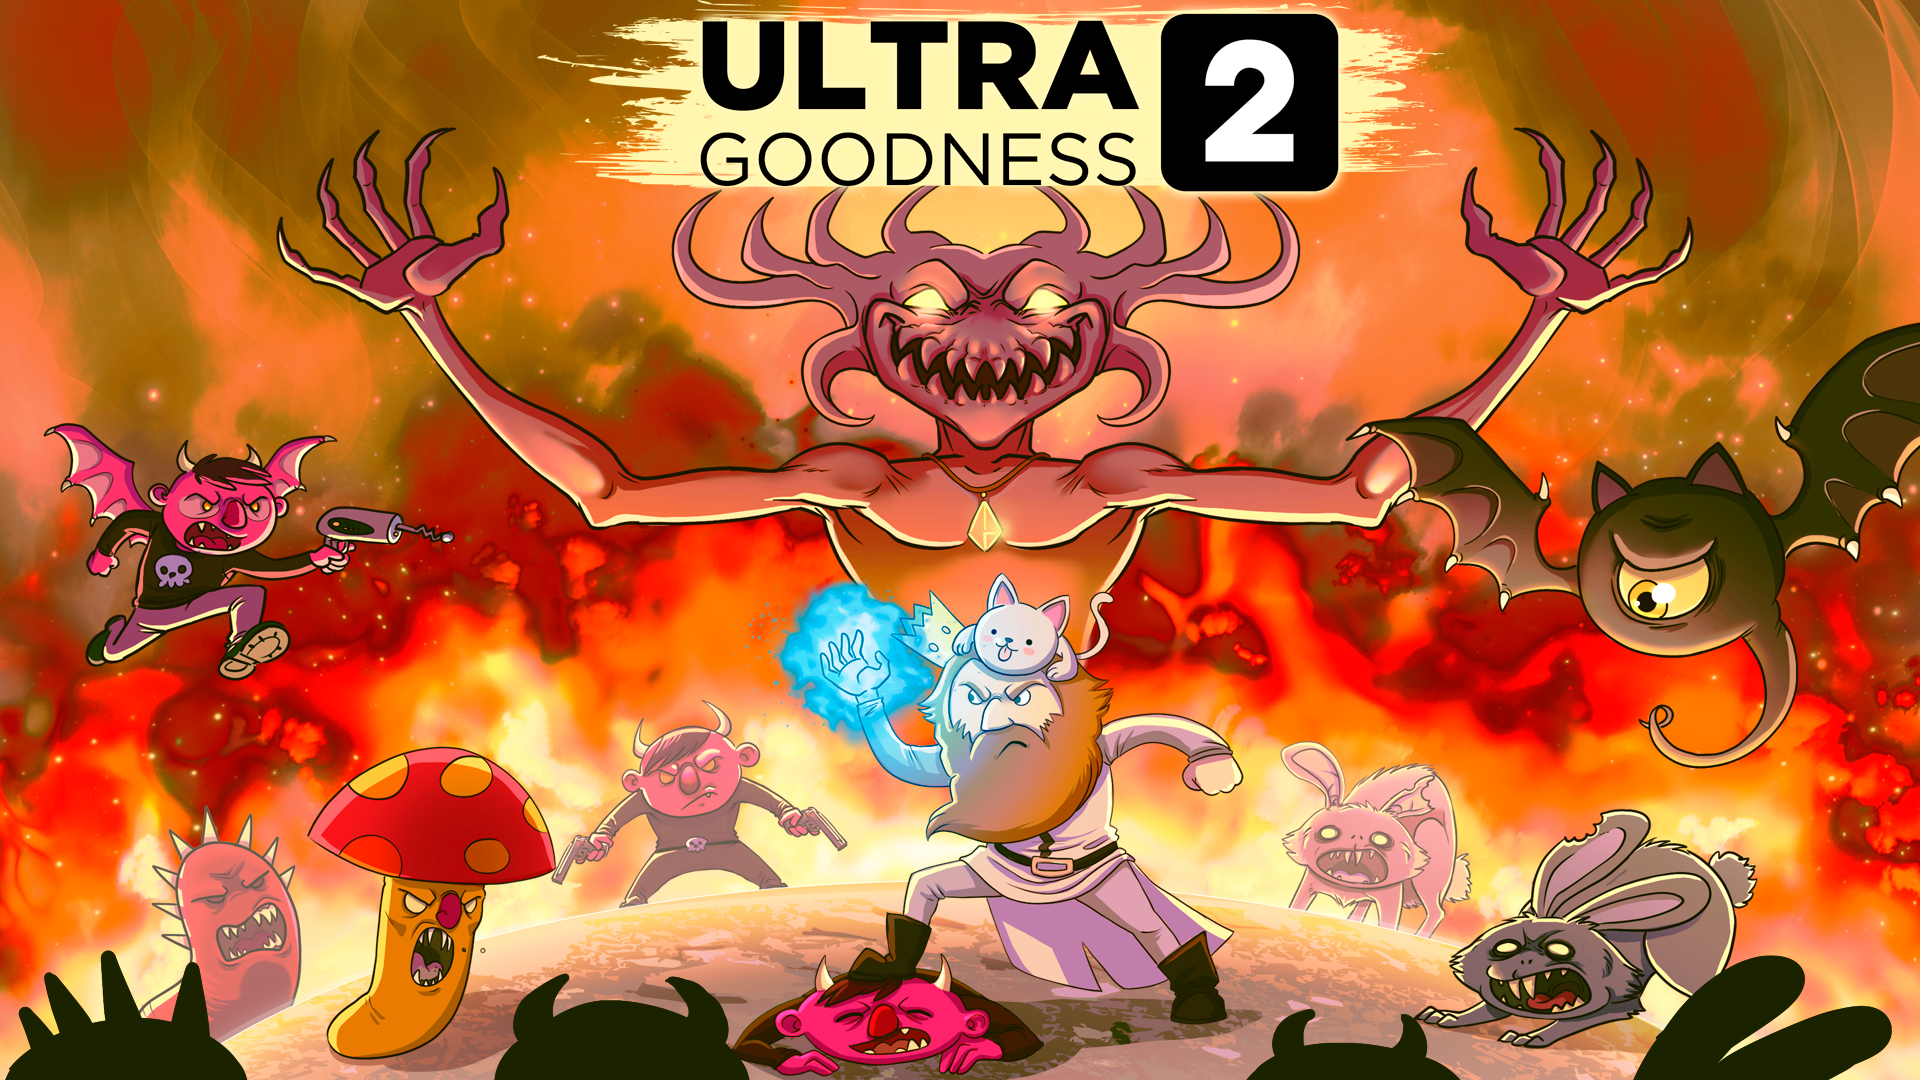 ultra goodness 2 game wallpaper 74235